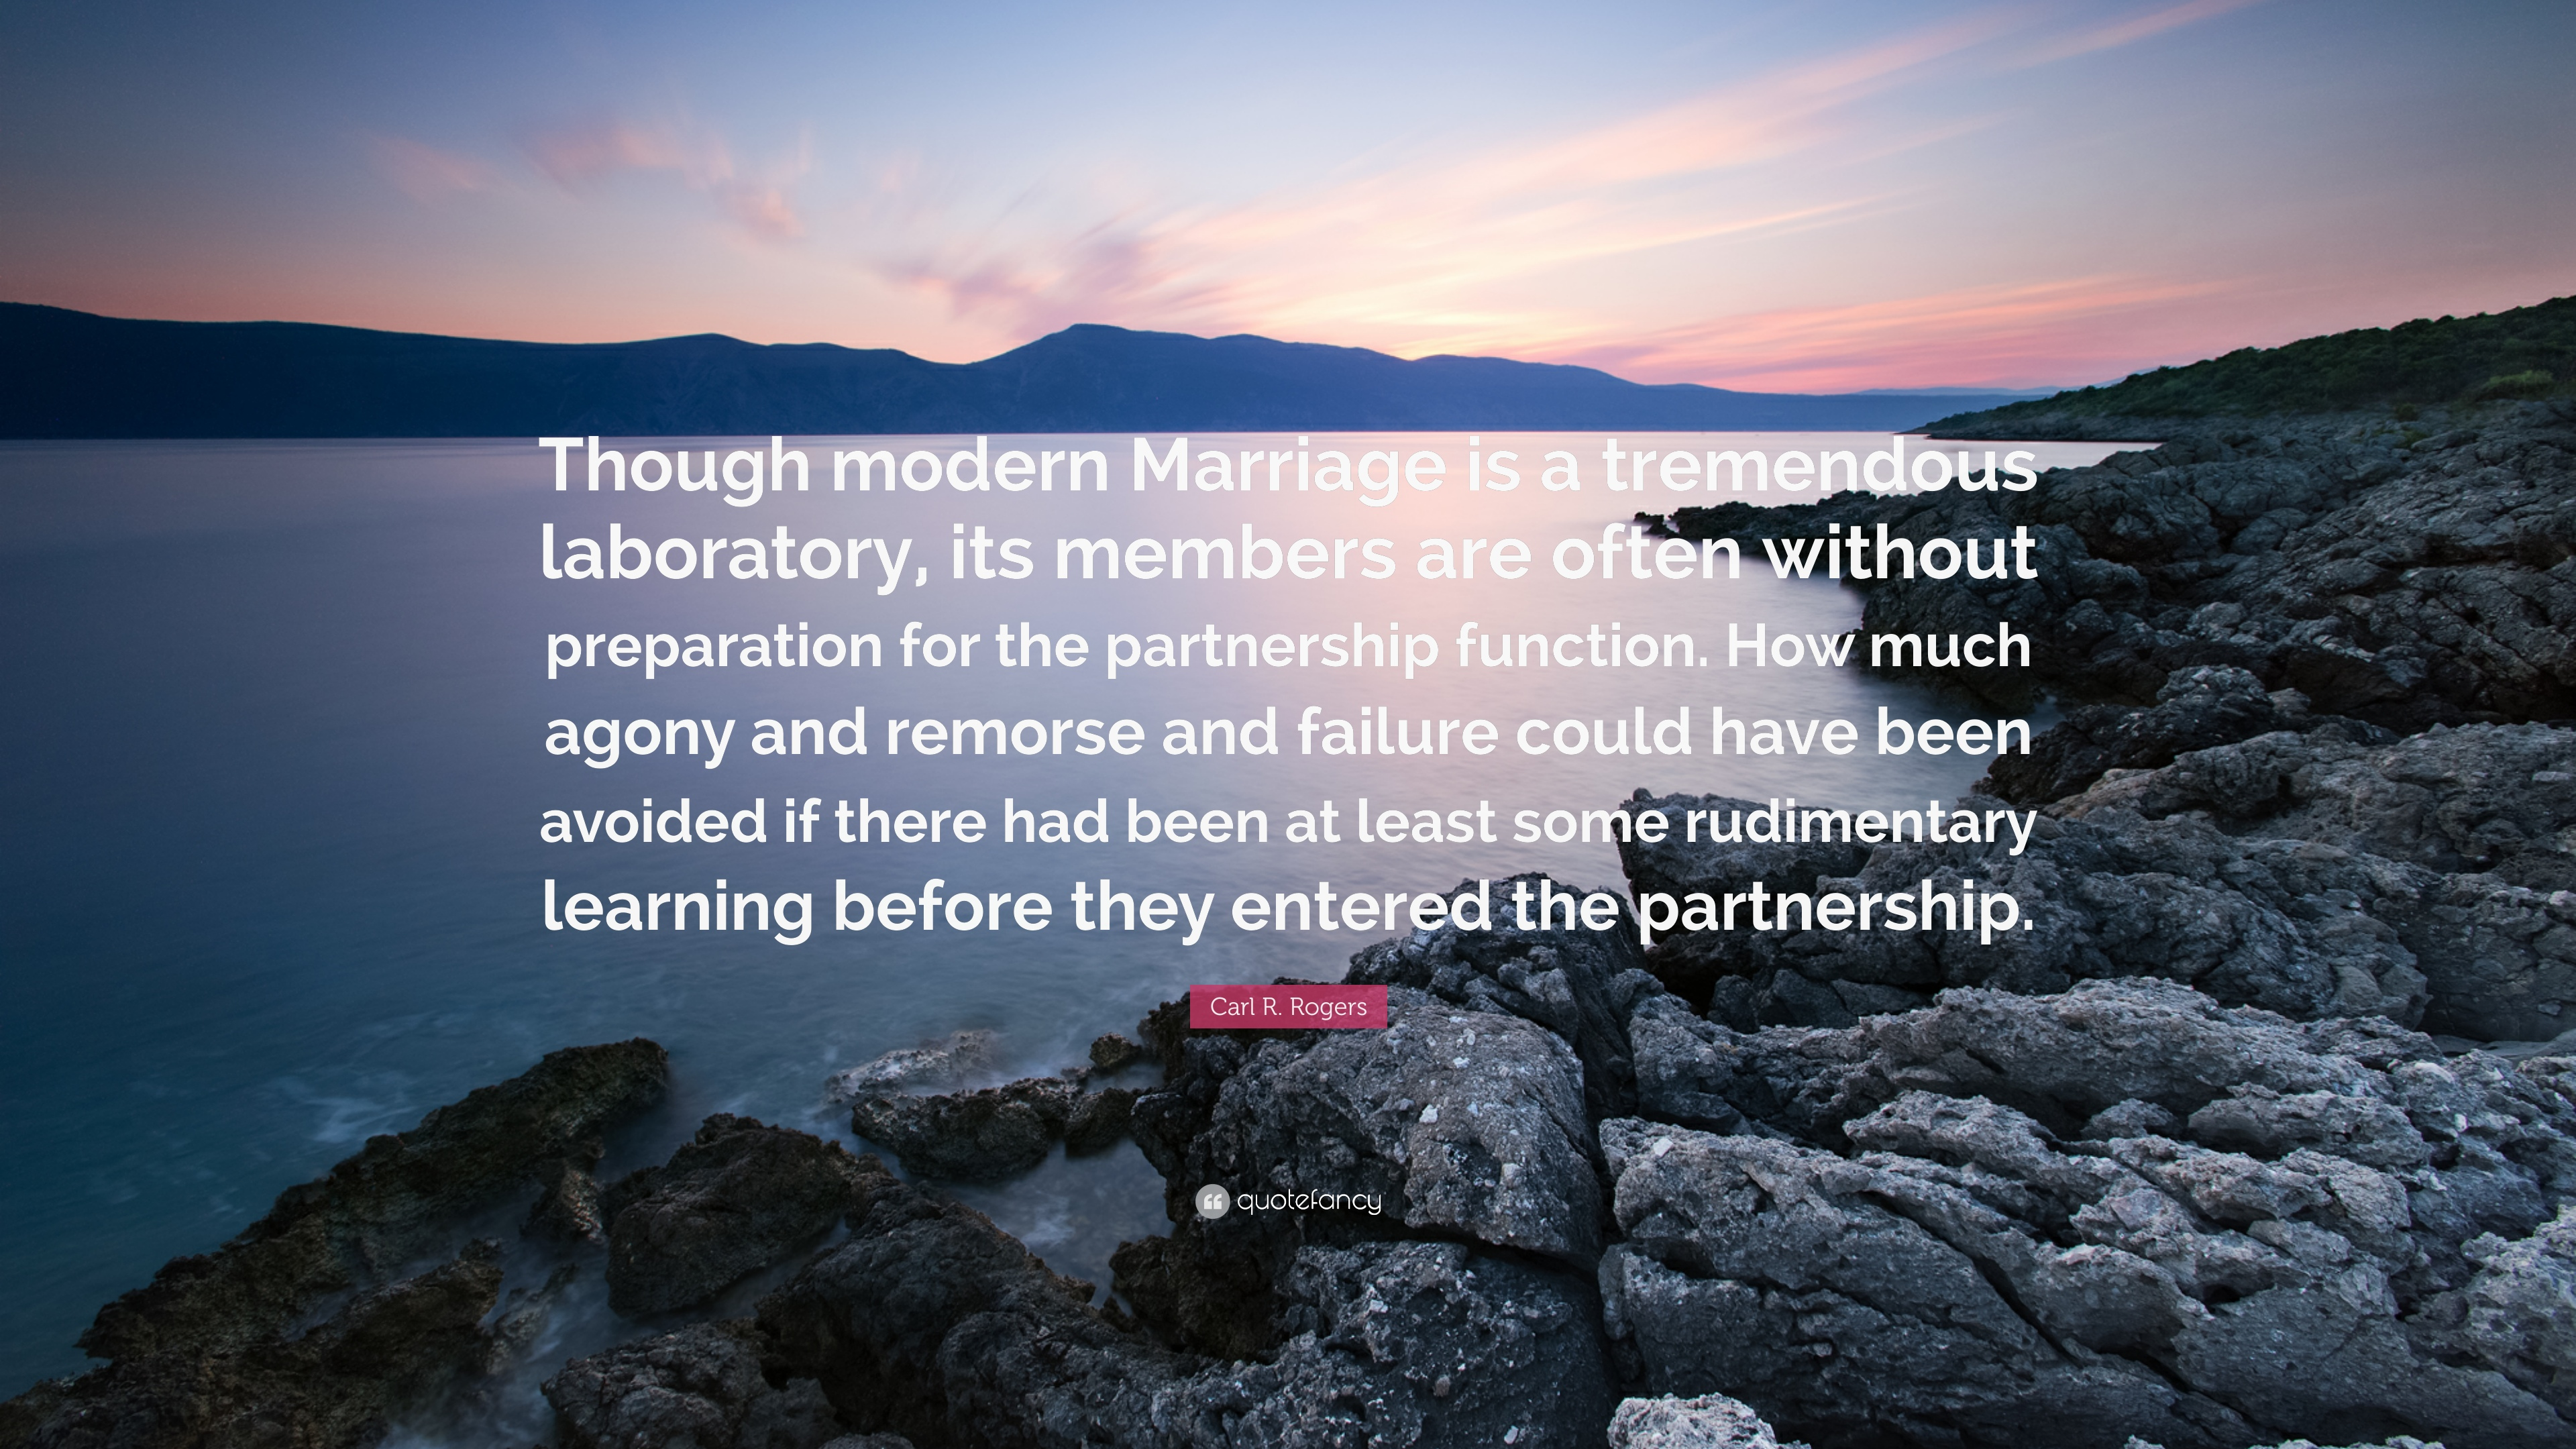 Charmant Carl R. Rogers Quote: U201cThough Modern Marriage Is A Tremendous Laboratory,  Its